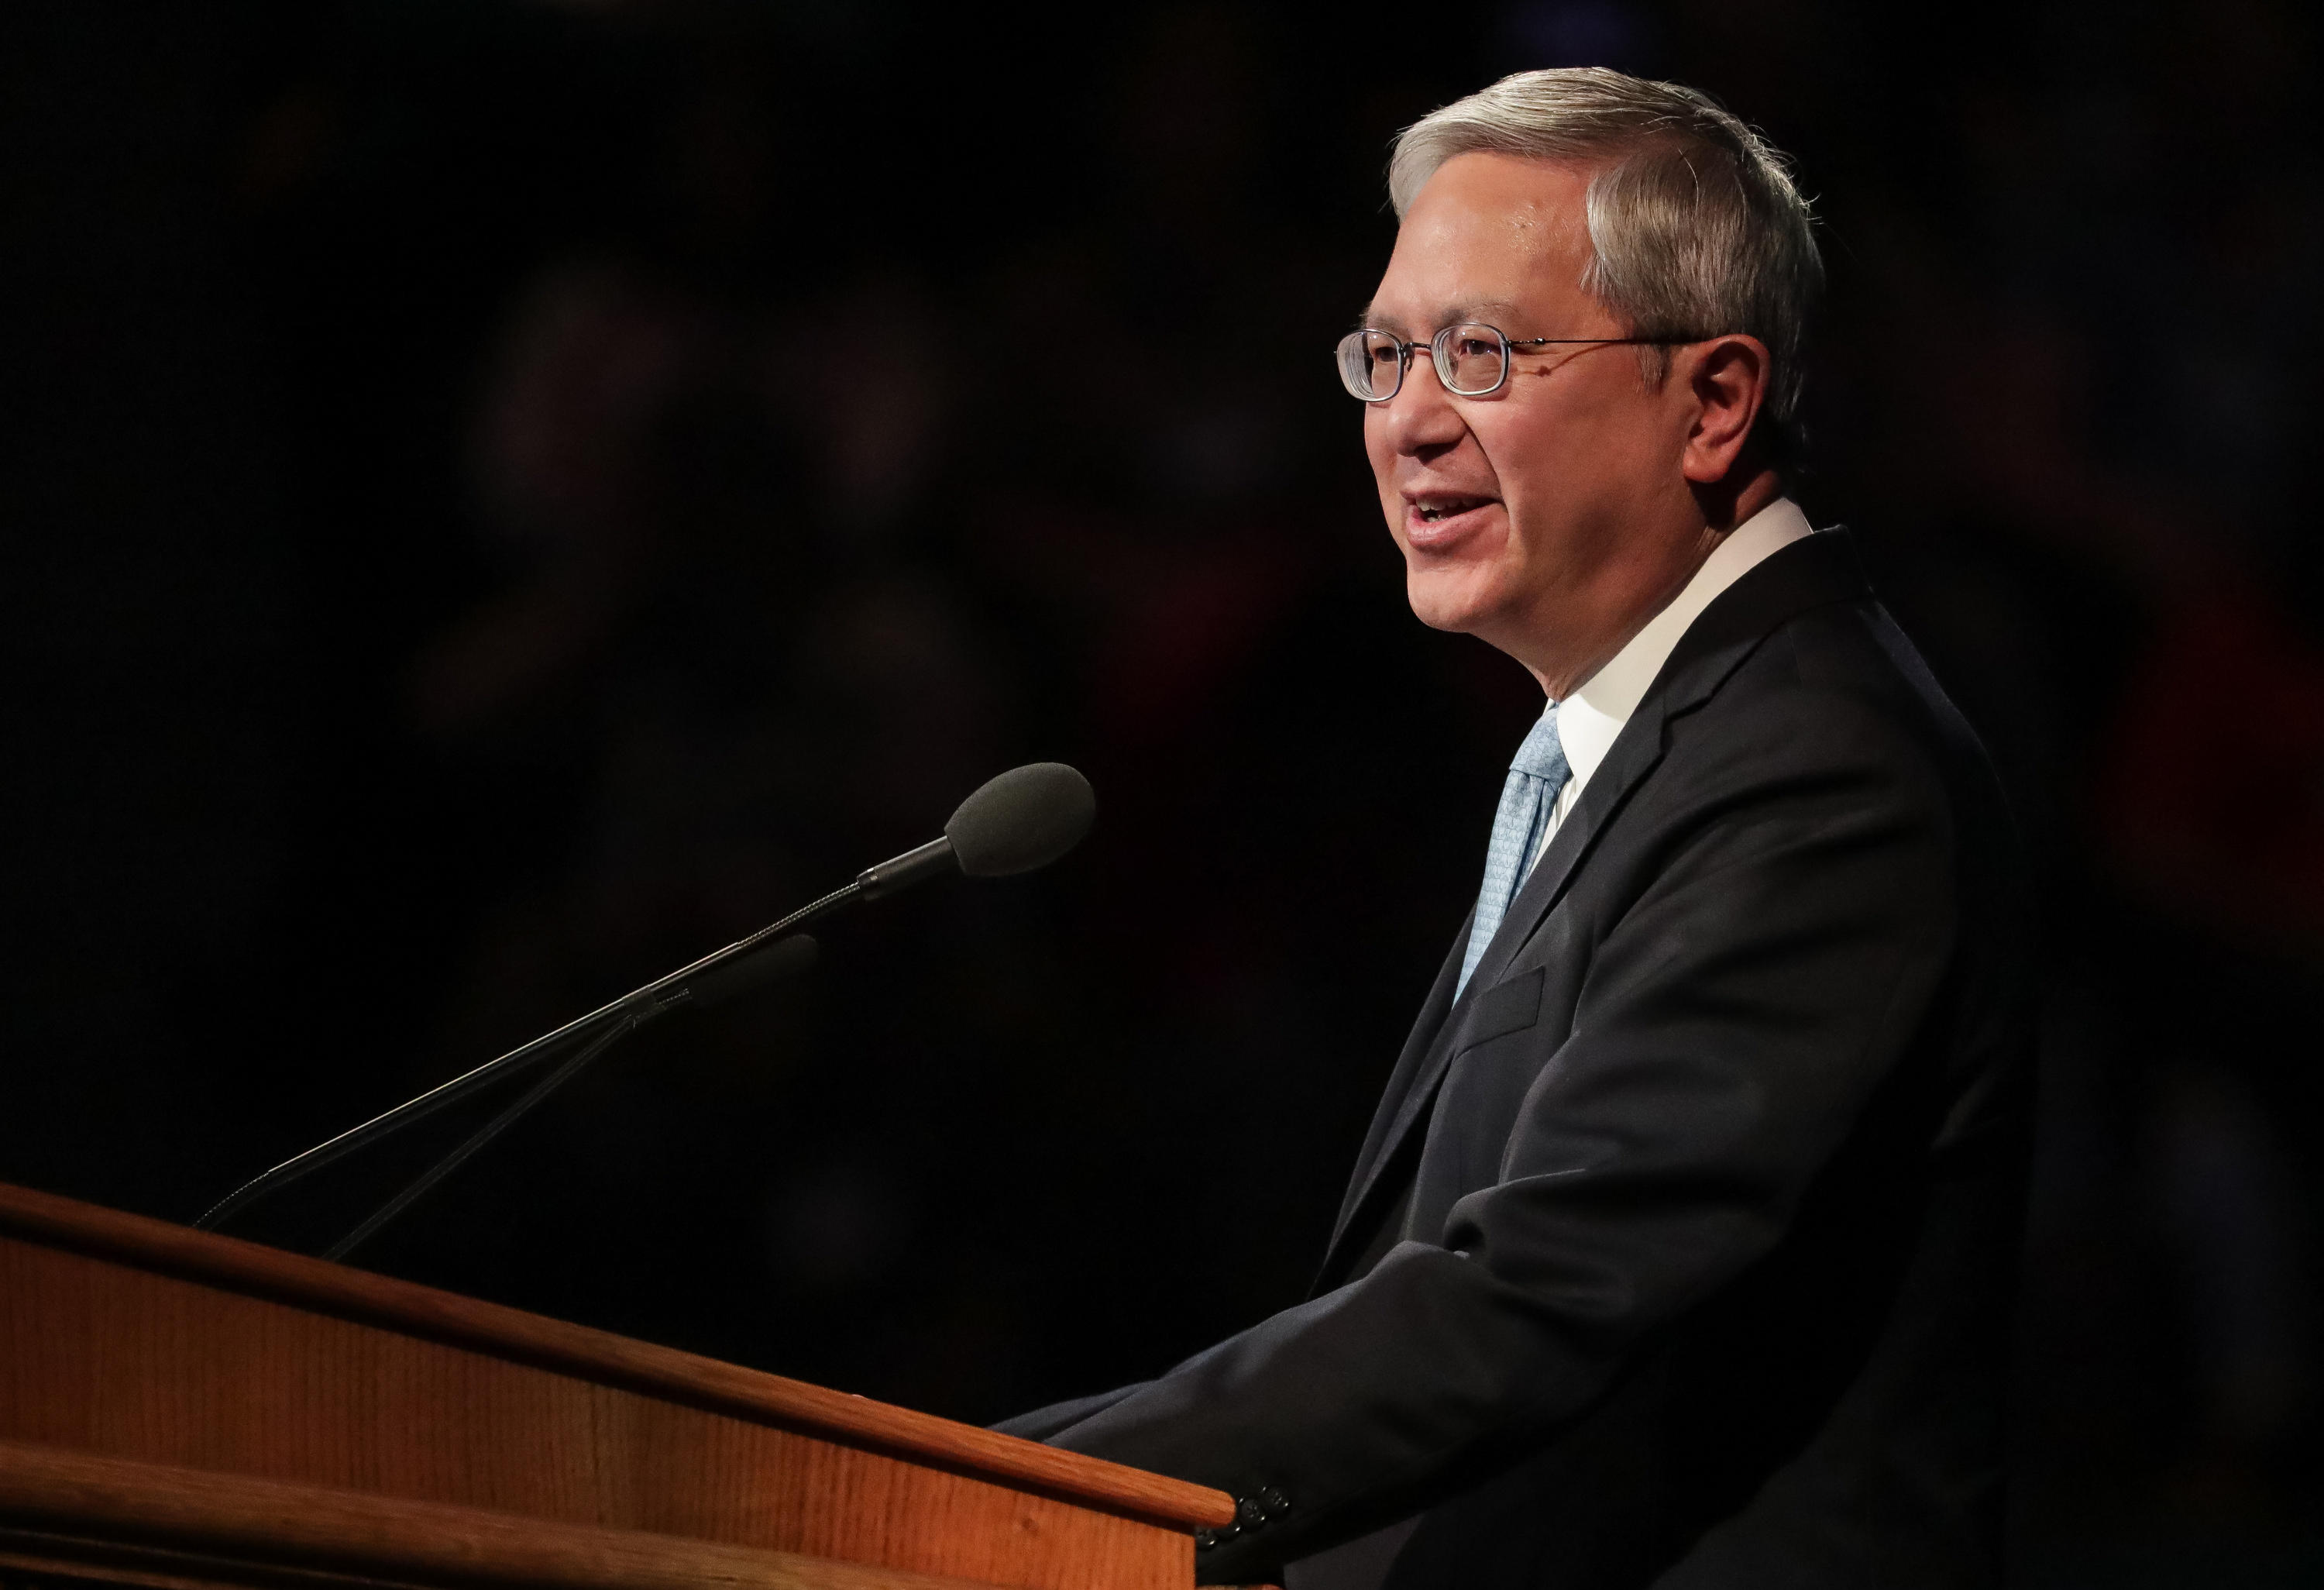 Elder Gerrit W. Gong, of the Quorum of the Twelve Apostles of the LDS Church, speaks at the BYU Women's Conference at the Marriott Center in Provo on Friday, May 4, 2018.